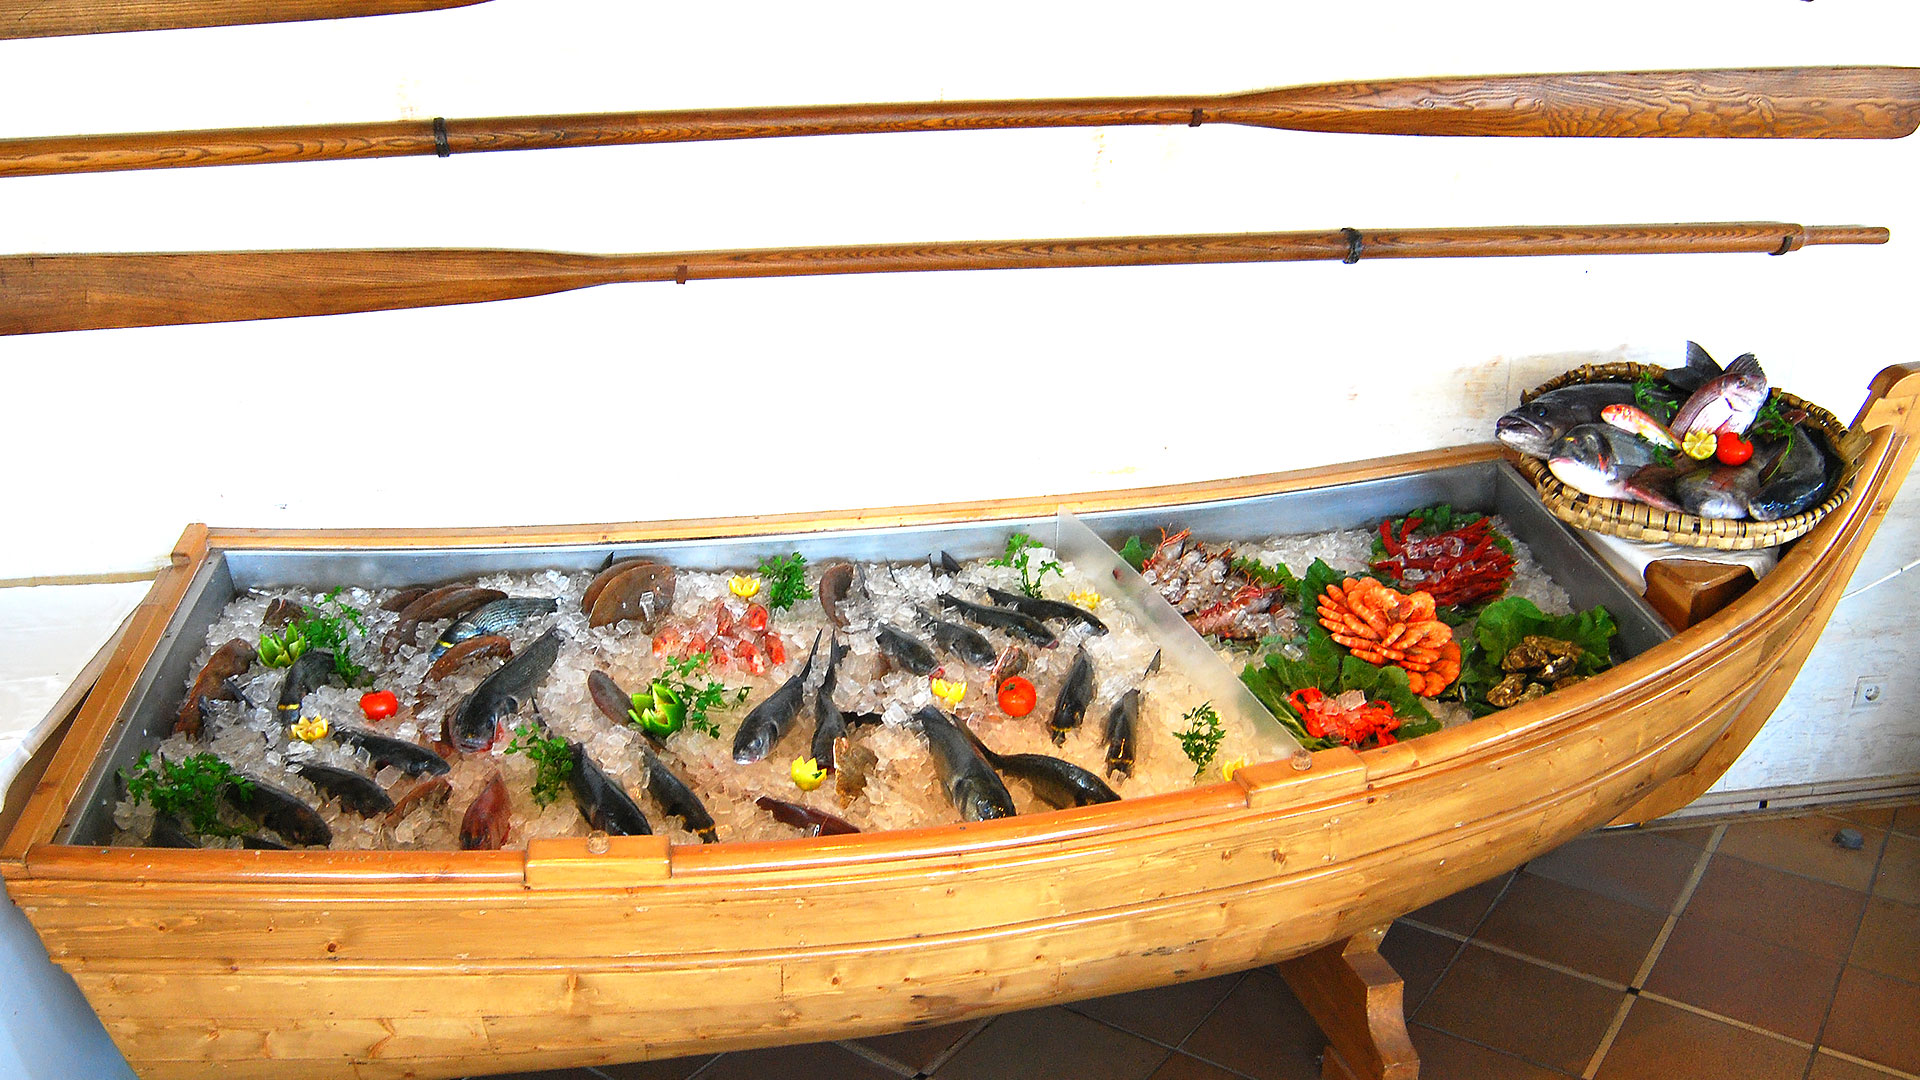 The world-famous fish and seafood in the refrigerator boat